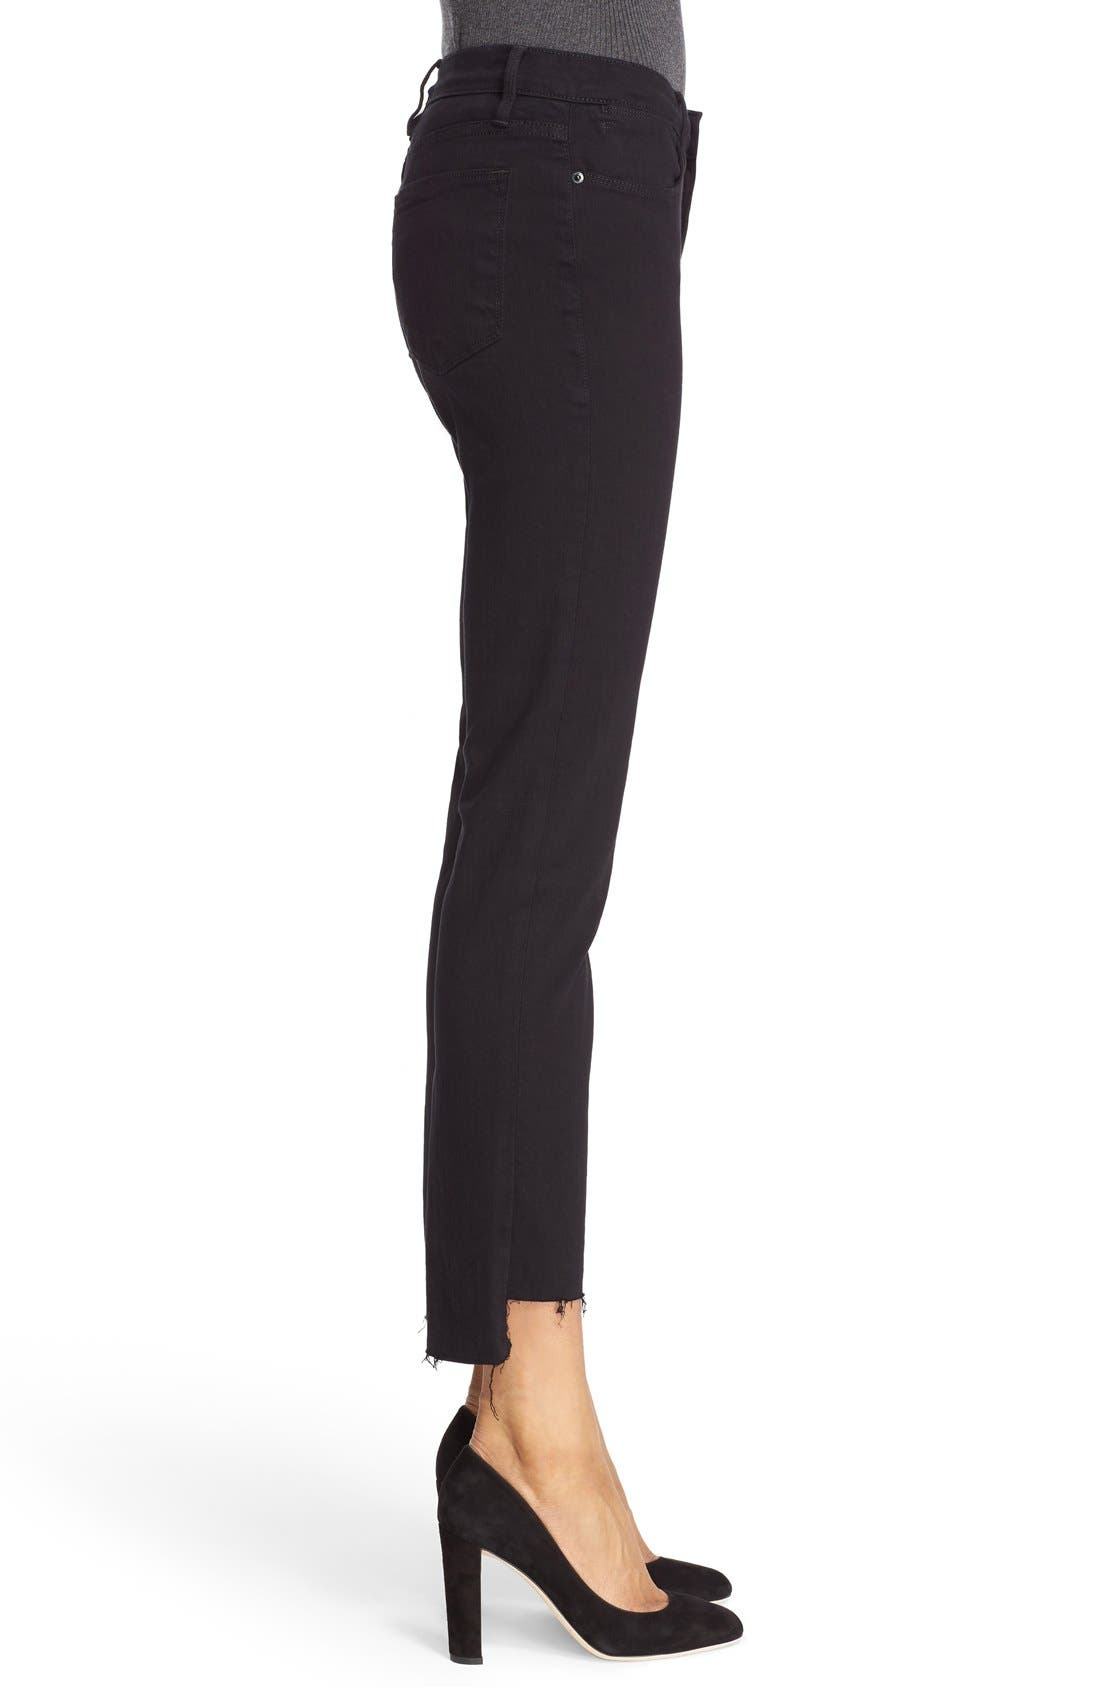 FRAME, Le High Straight High Waist Staggered Hem Jeans, Alternate thumbnail 5, color, FILM NOIR